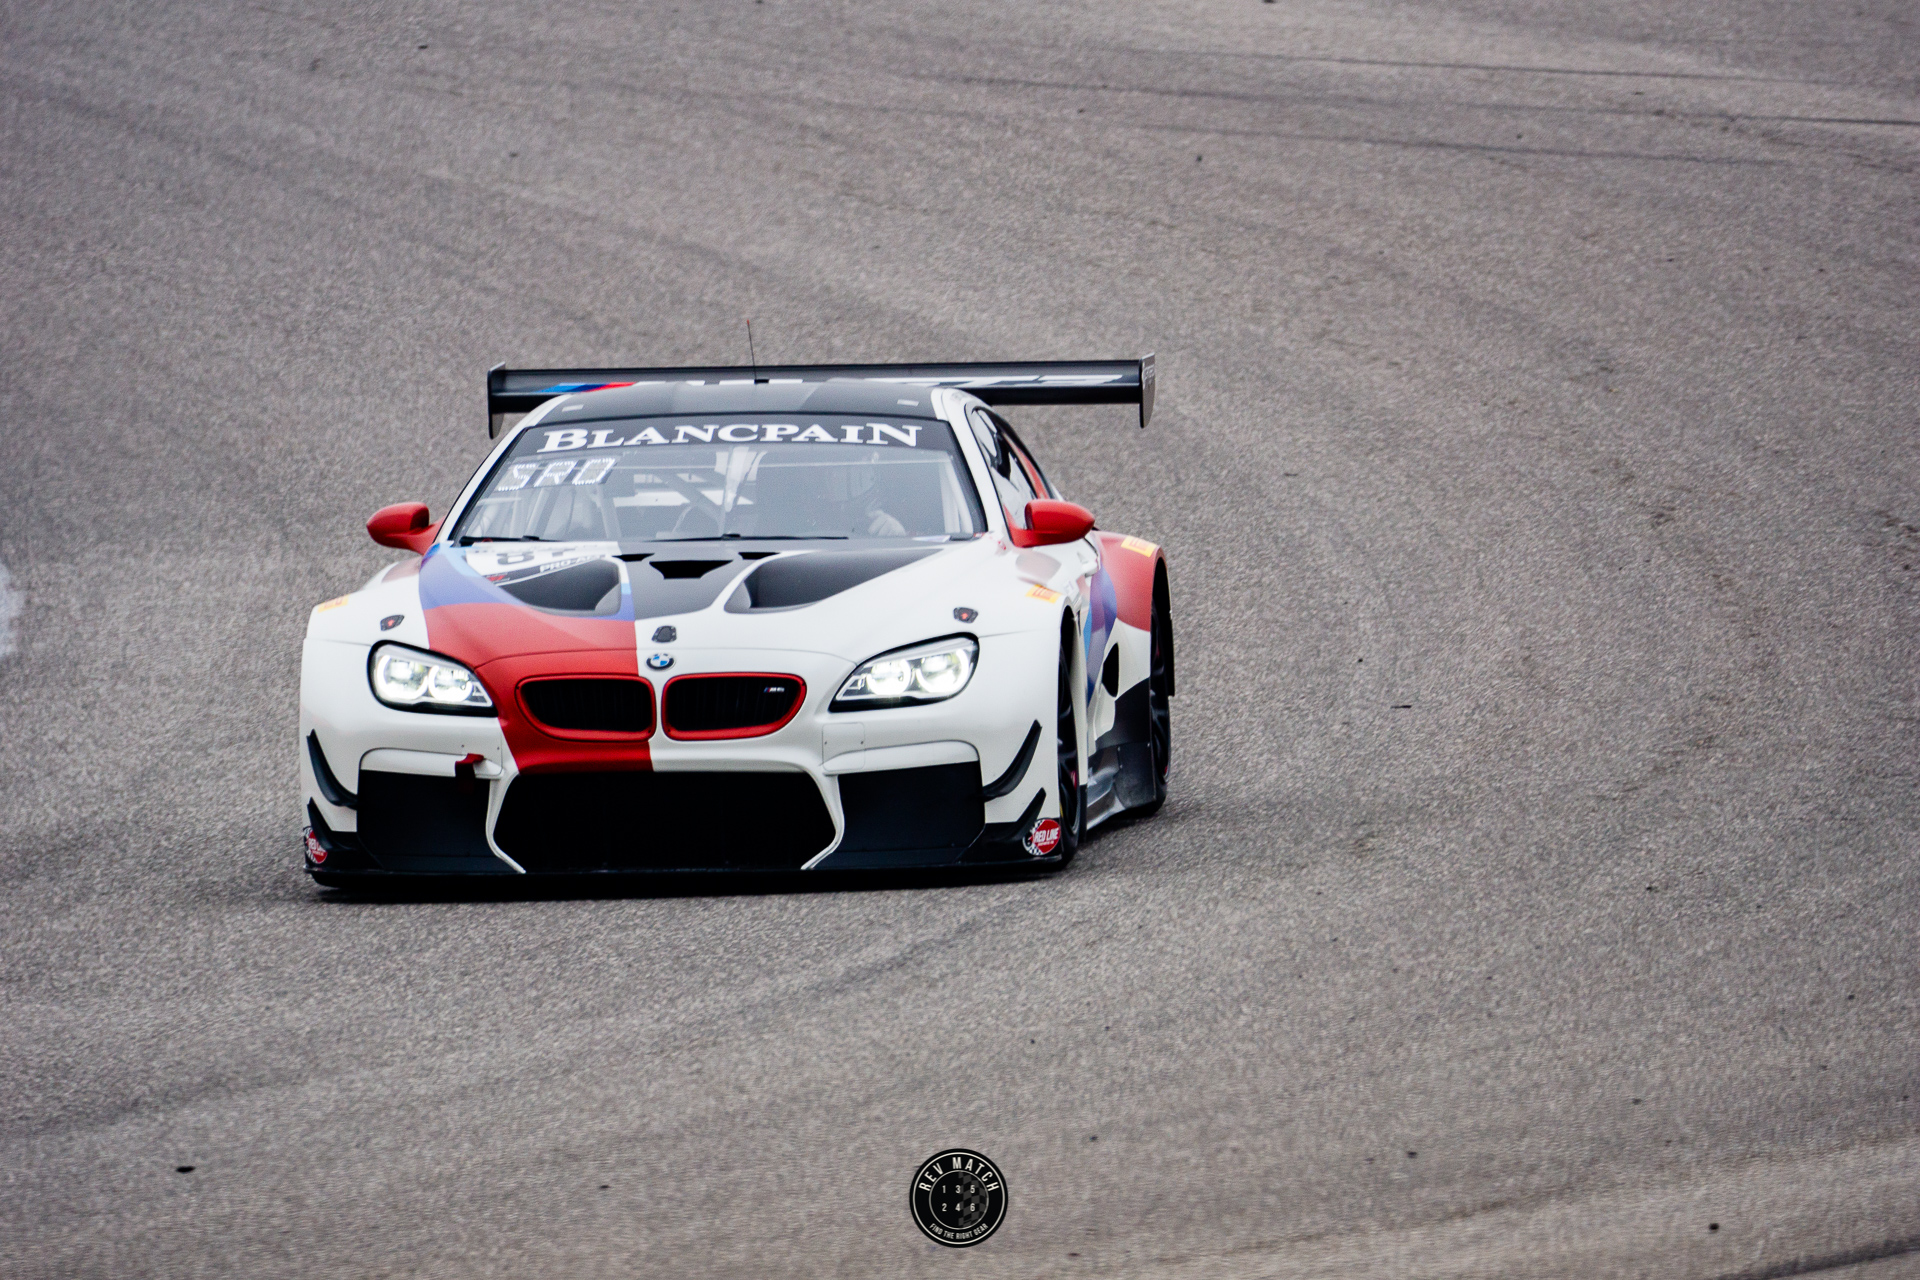 Blancpain GT COTA 2019 Rev Match Media-174.jpg